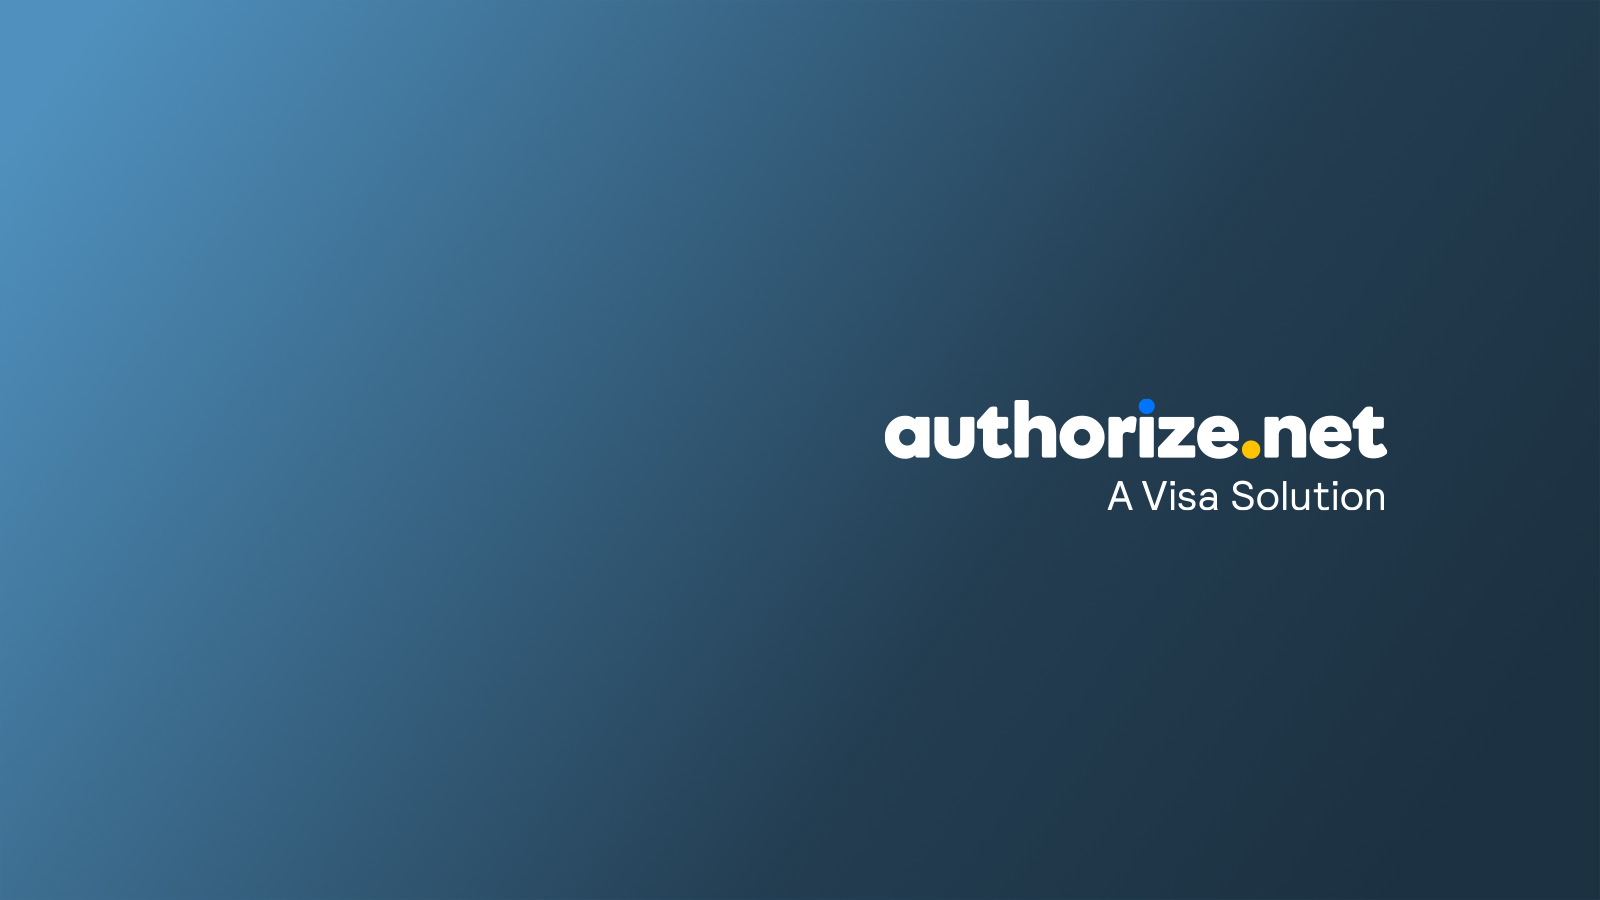 Authorize.Net logo with the phrase A Visa Solution underneath.